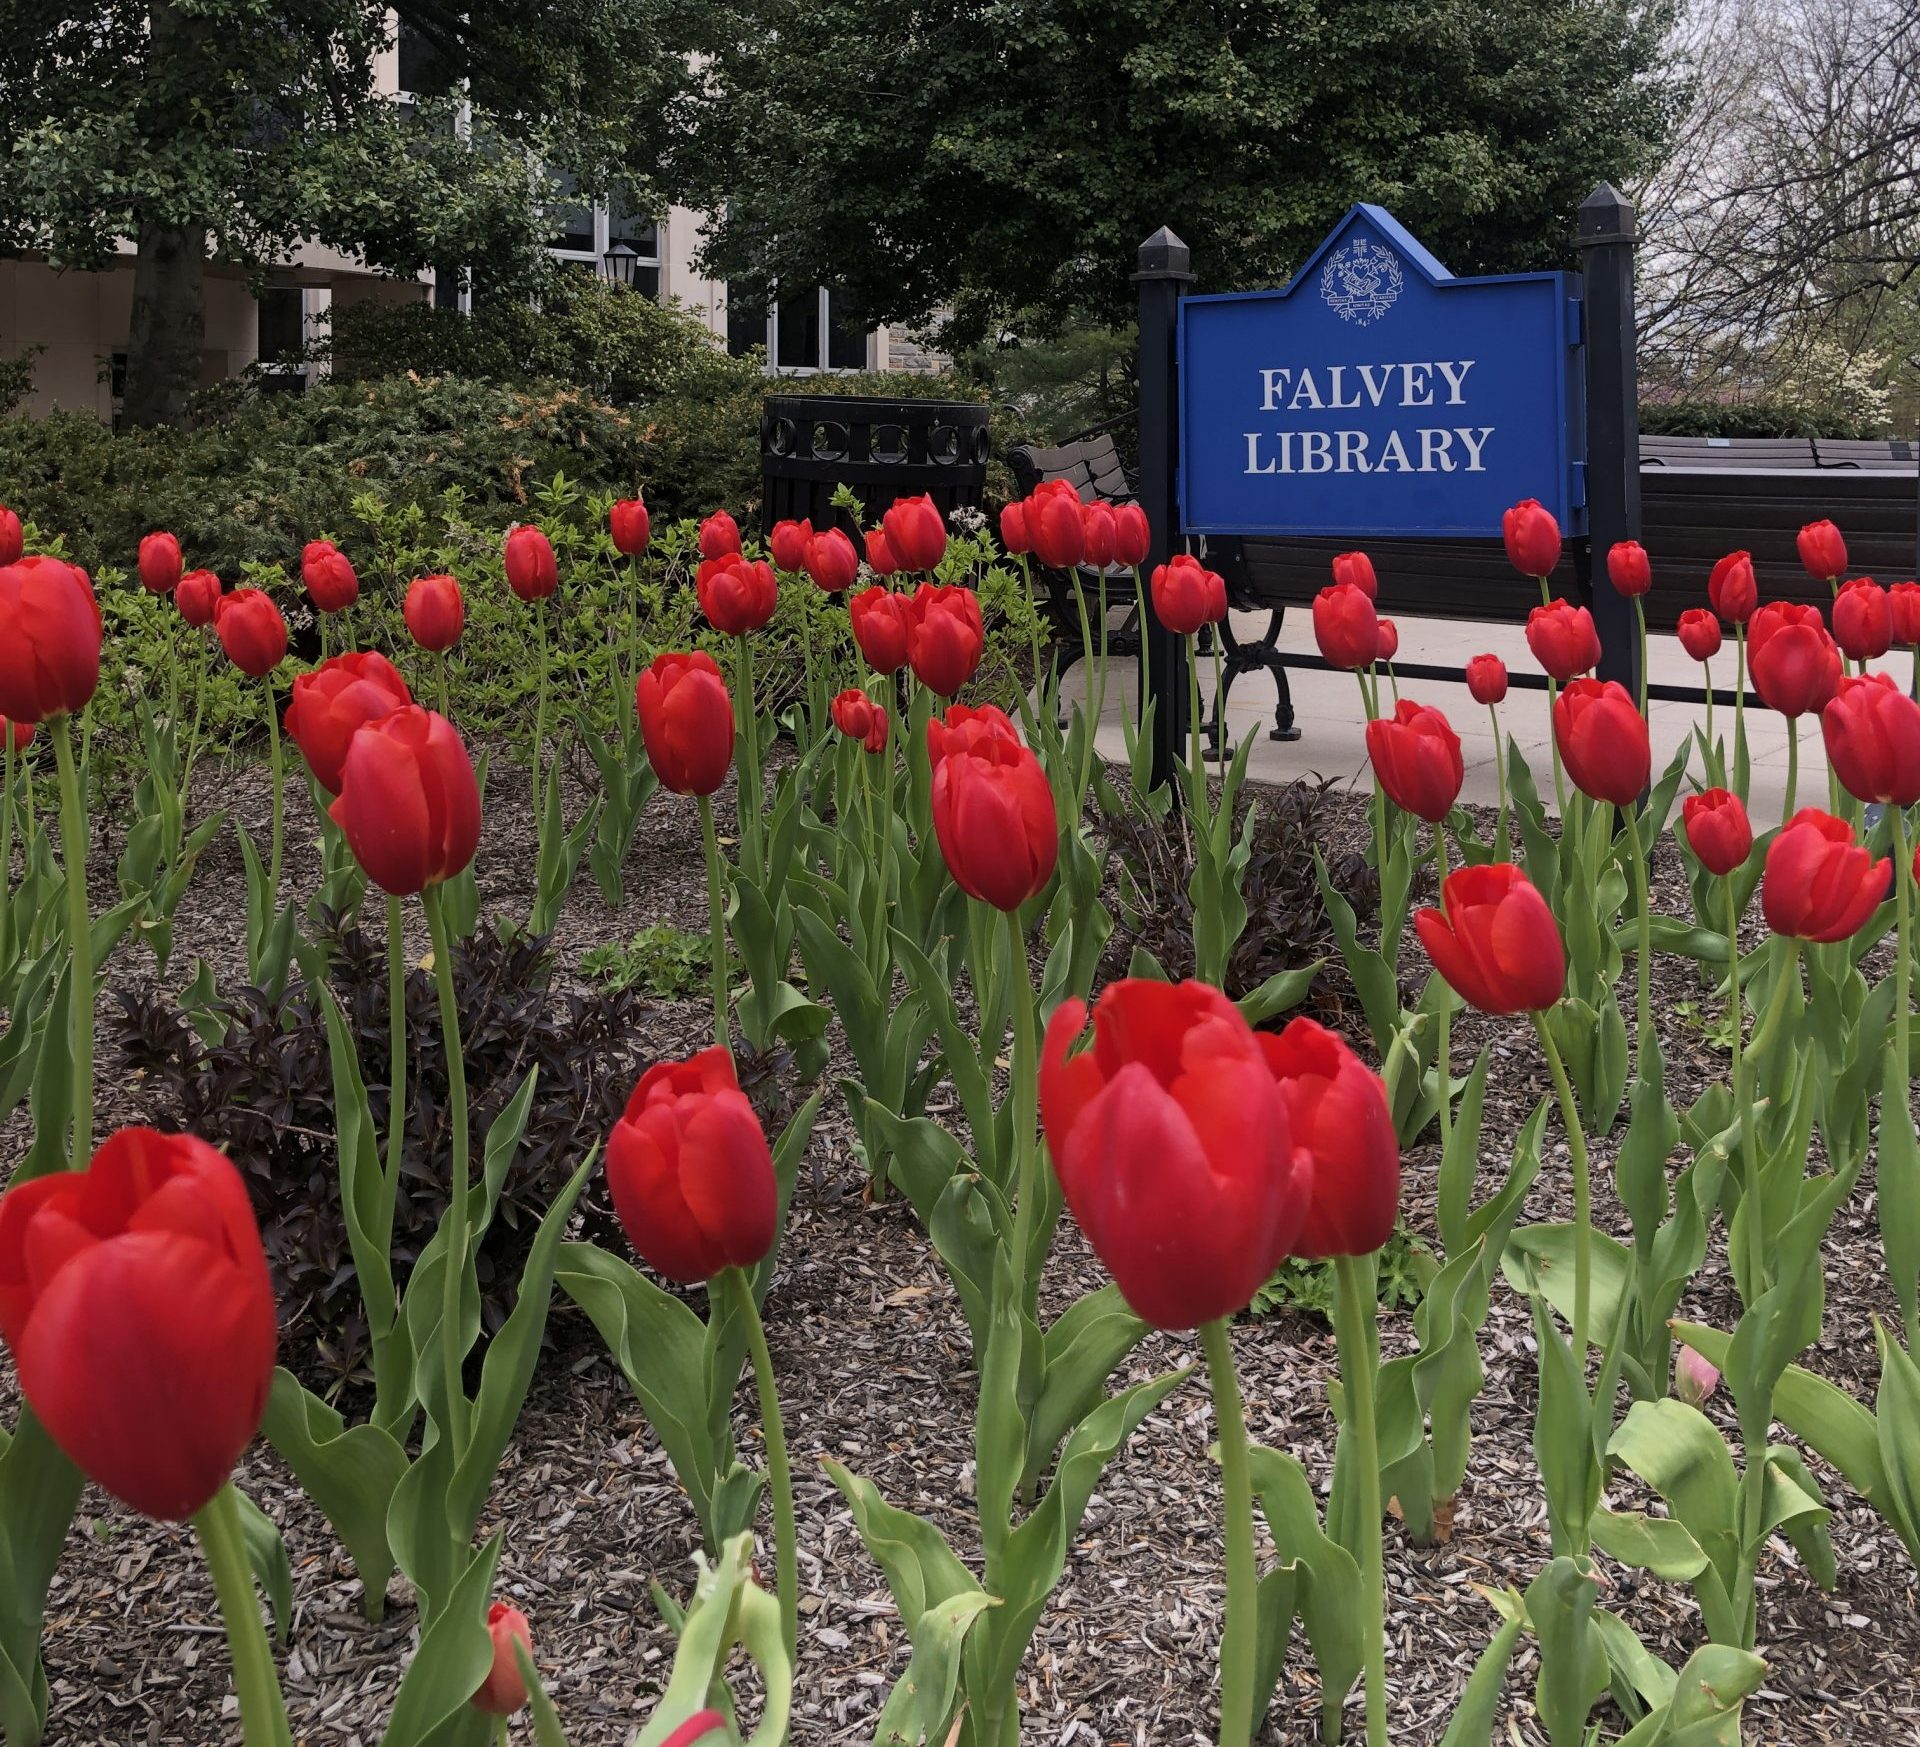 Image of red tulips blooming in front of the Falvey Memorial Library sign.